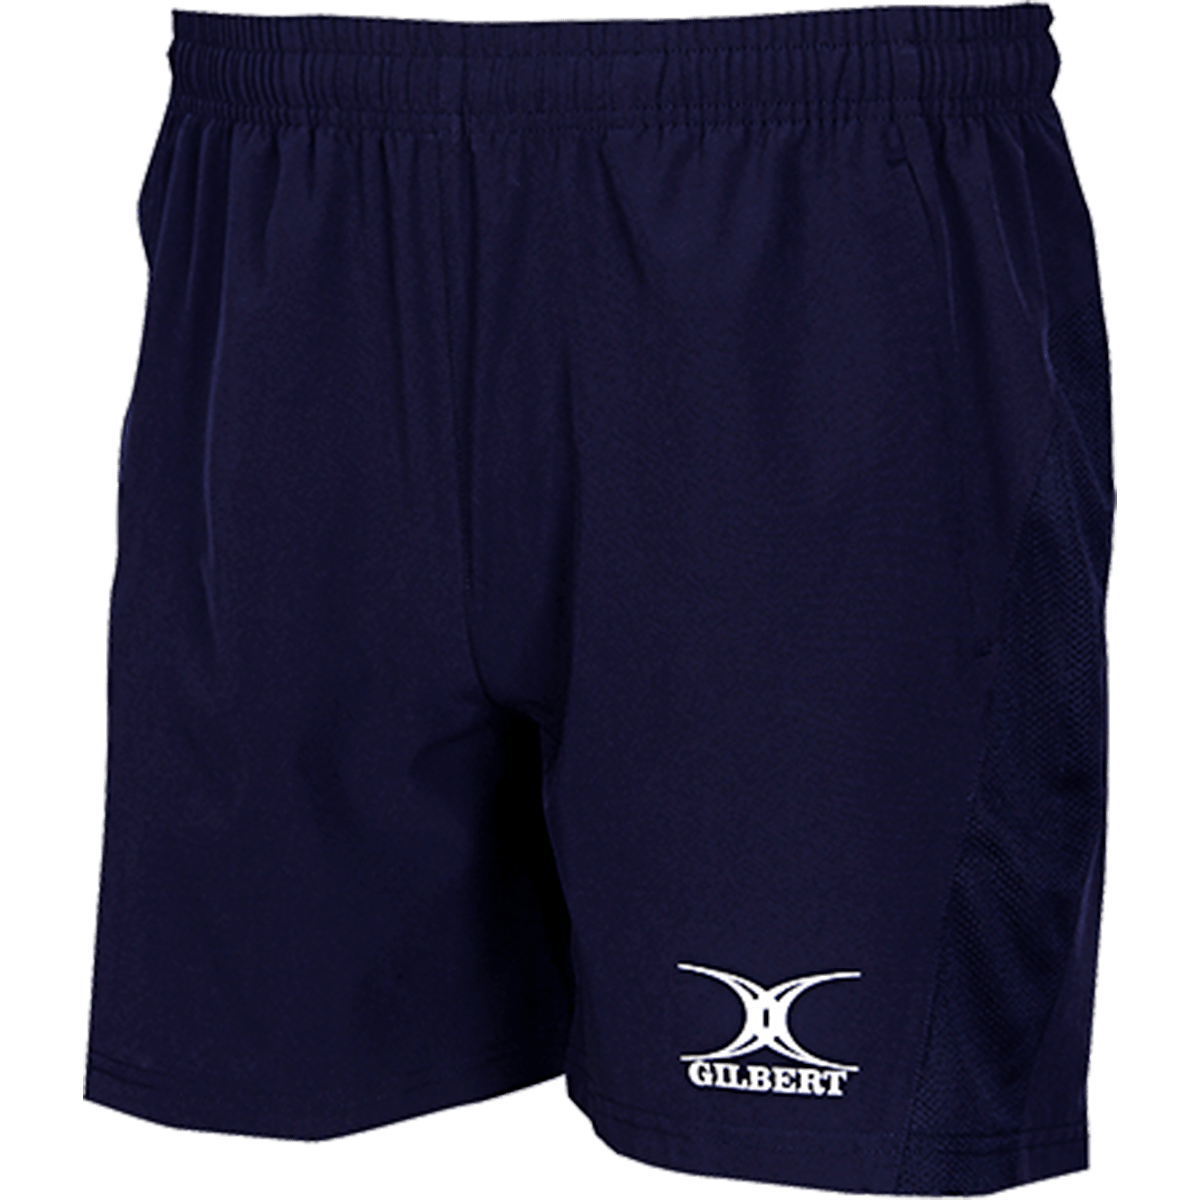 Gilbert Navy Women's Leisure Shorts